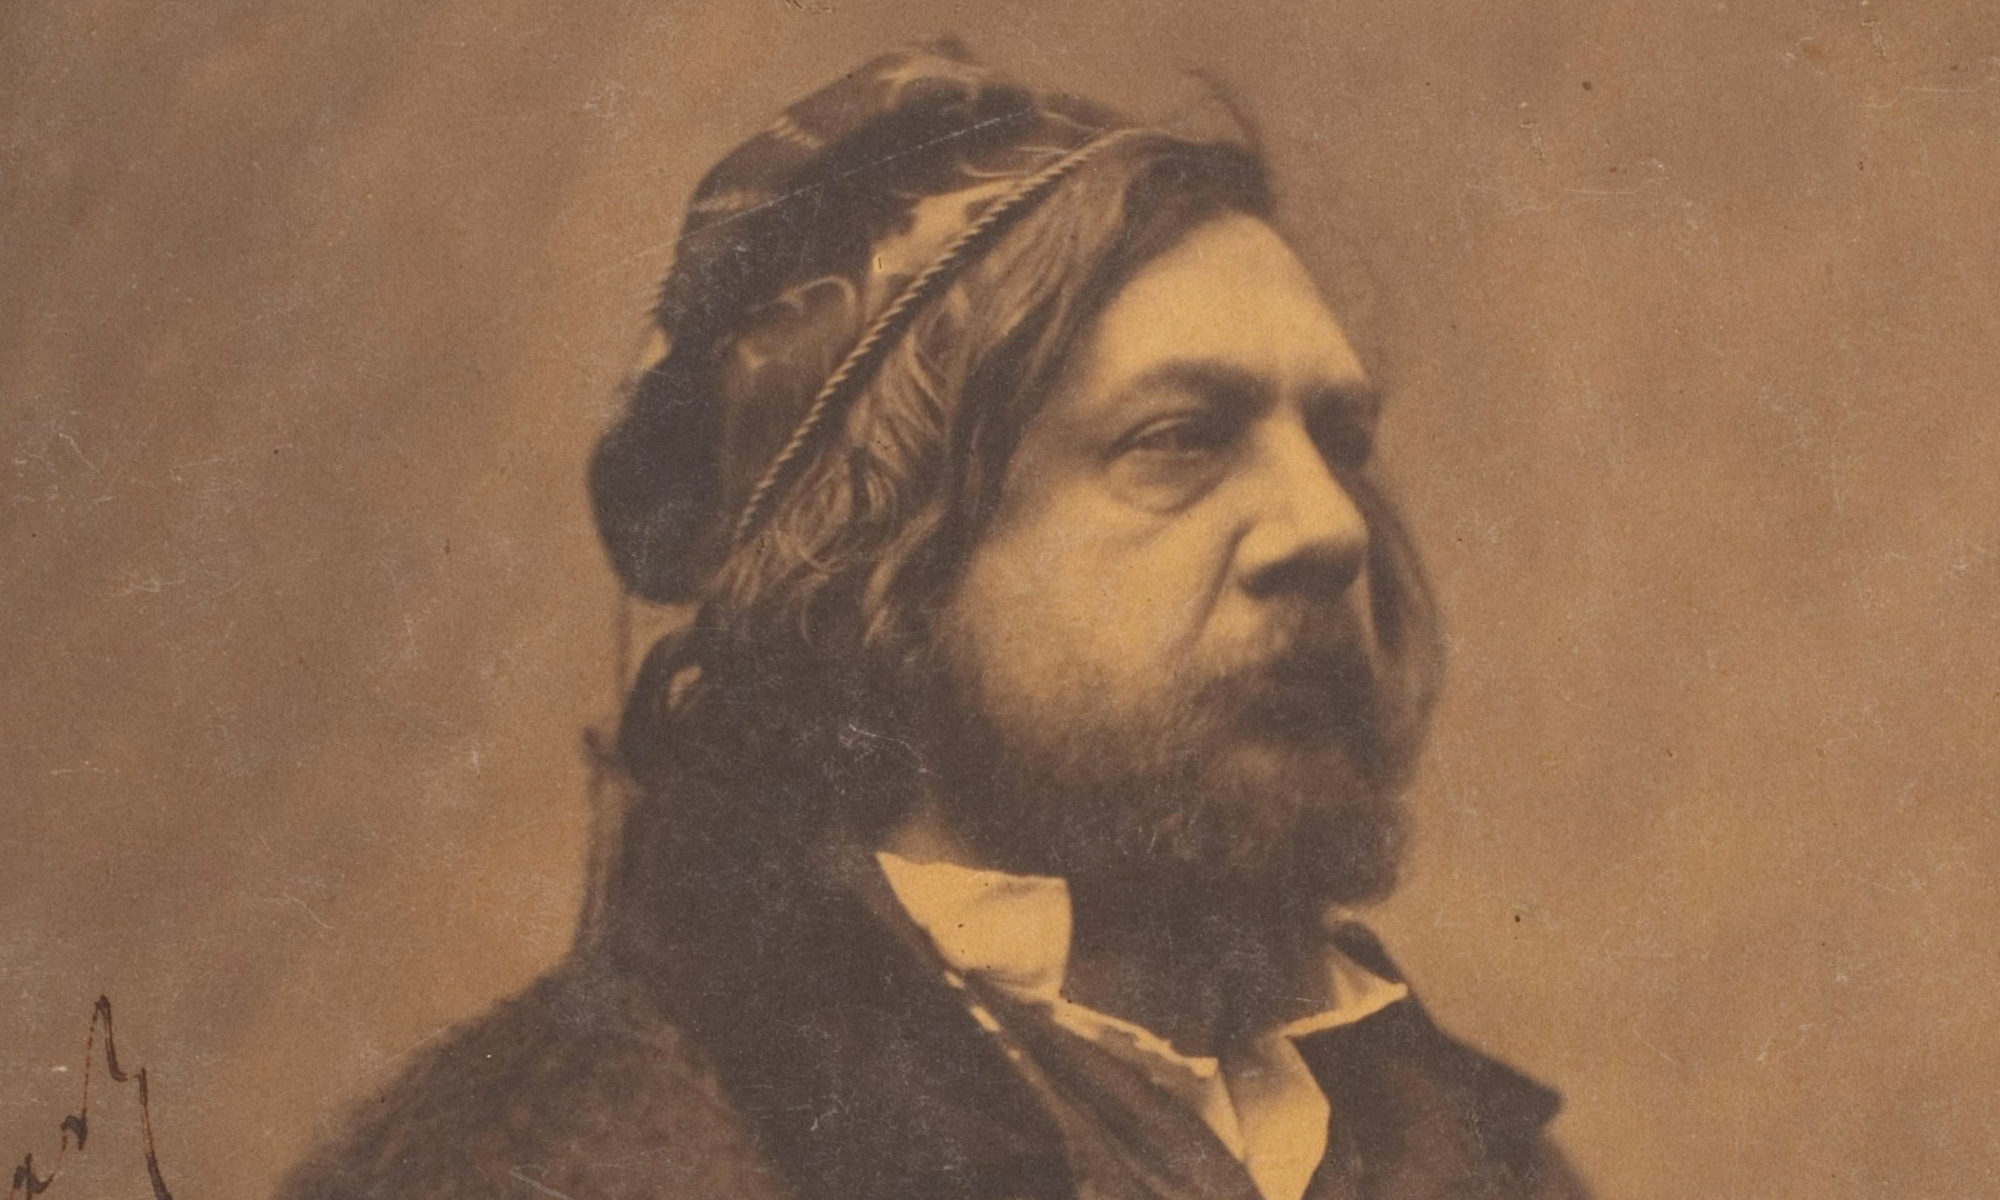 Théophile Gautier - The Met